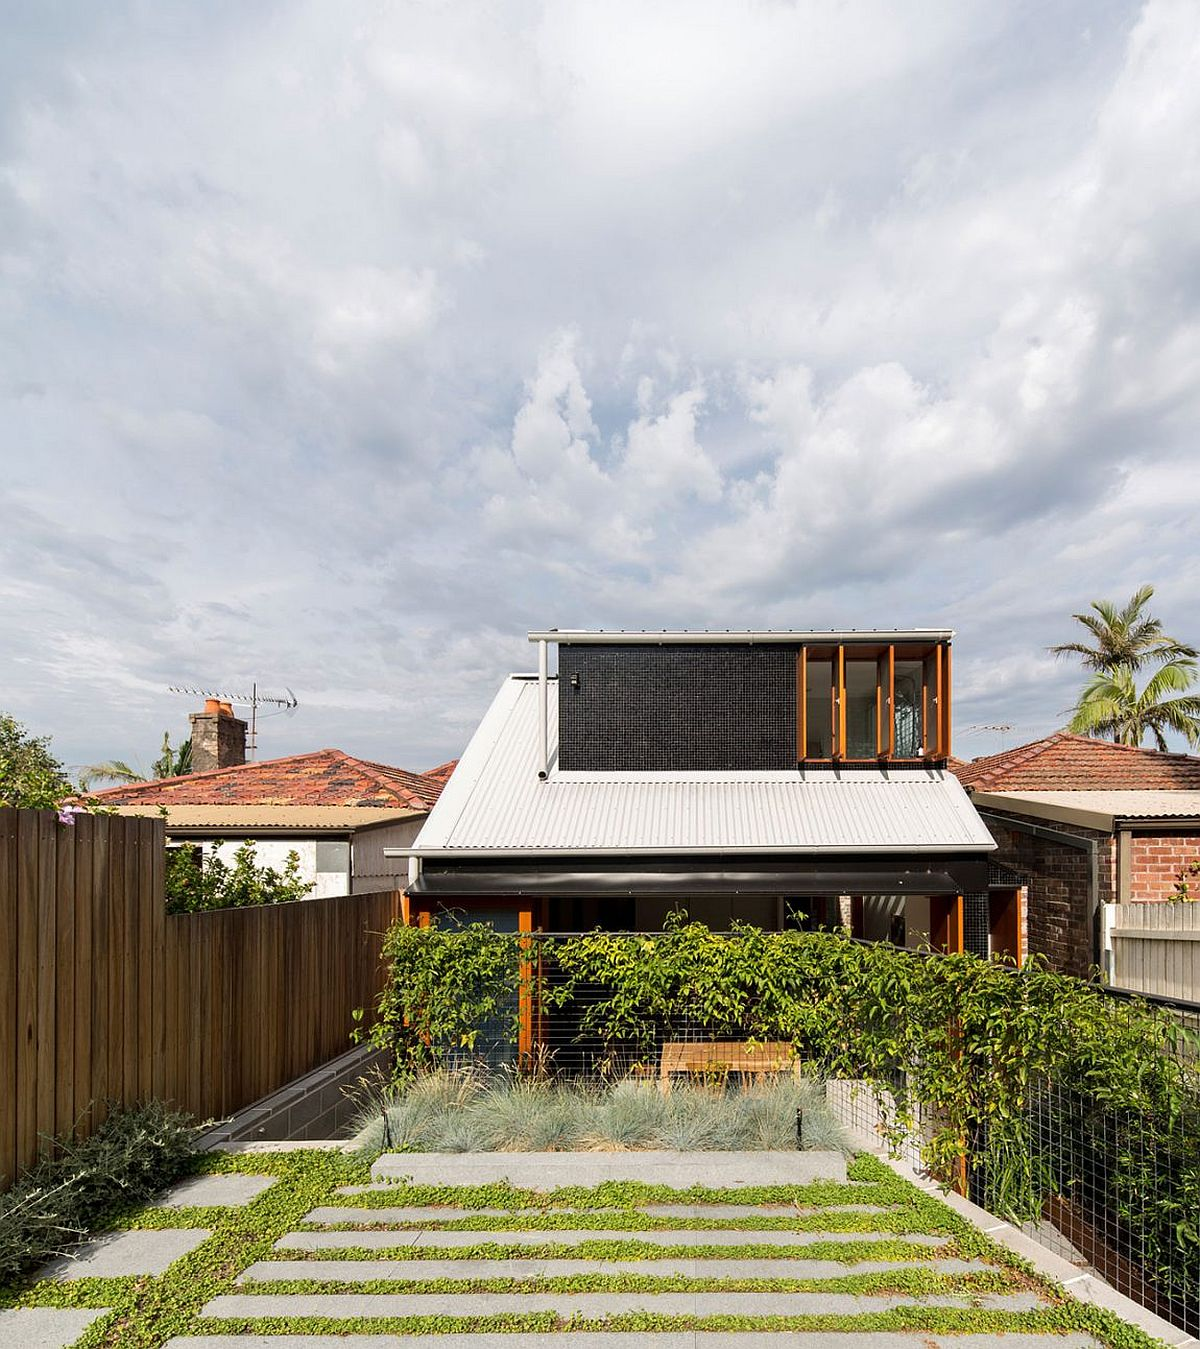 Rear garden of Downsize-Upsize House in North Shore, Sydney